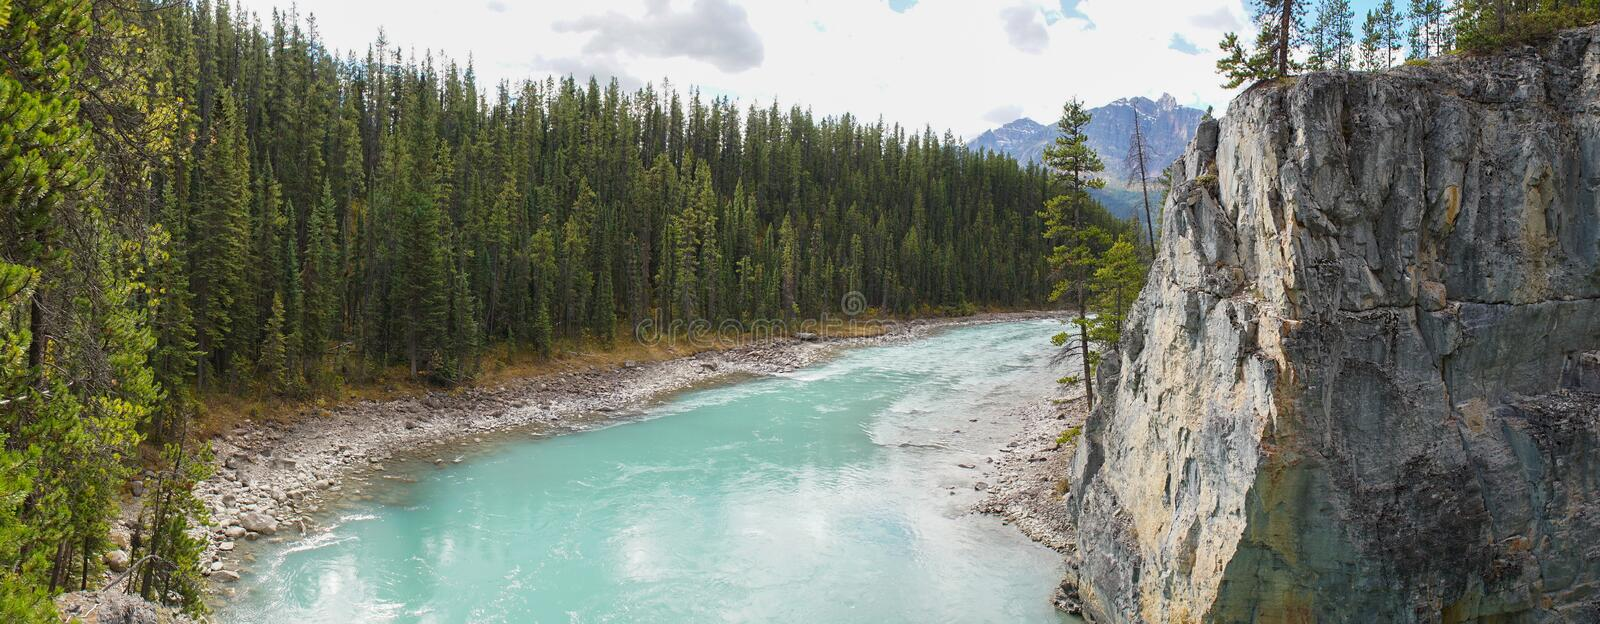 Lower River at Athabasca Falls in Jasper National Park, Canada. royalty free stock image